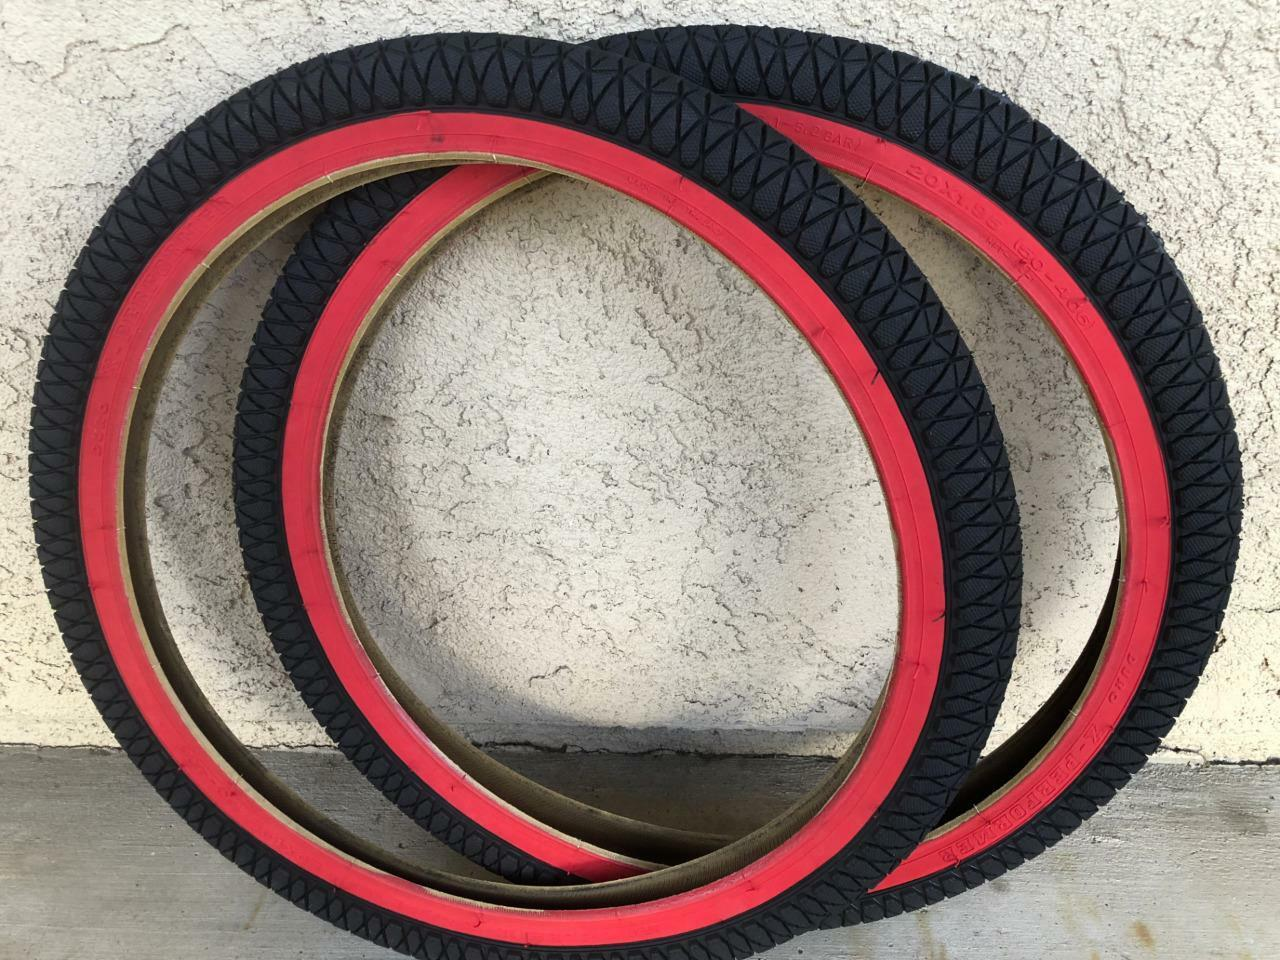 2 TIRES 20X1.95 BMX FREESTYLE BICYCLE DURO BIKE TIRE - RED WALL